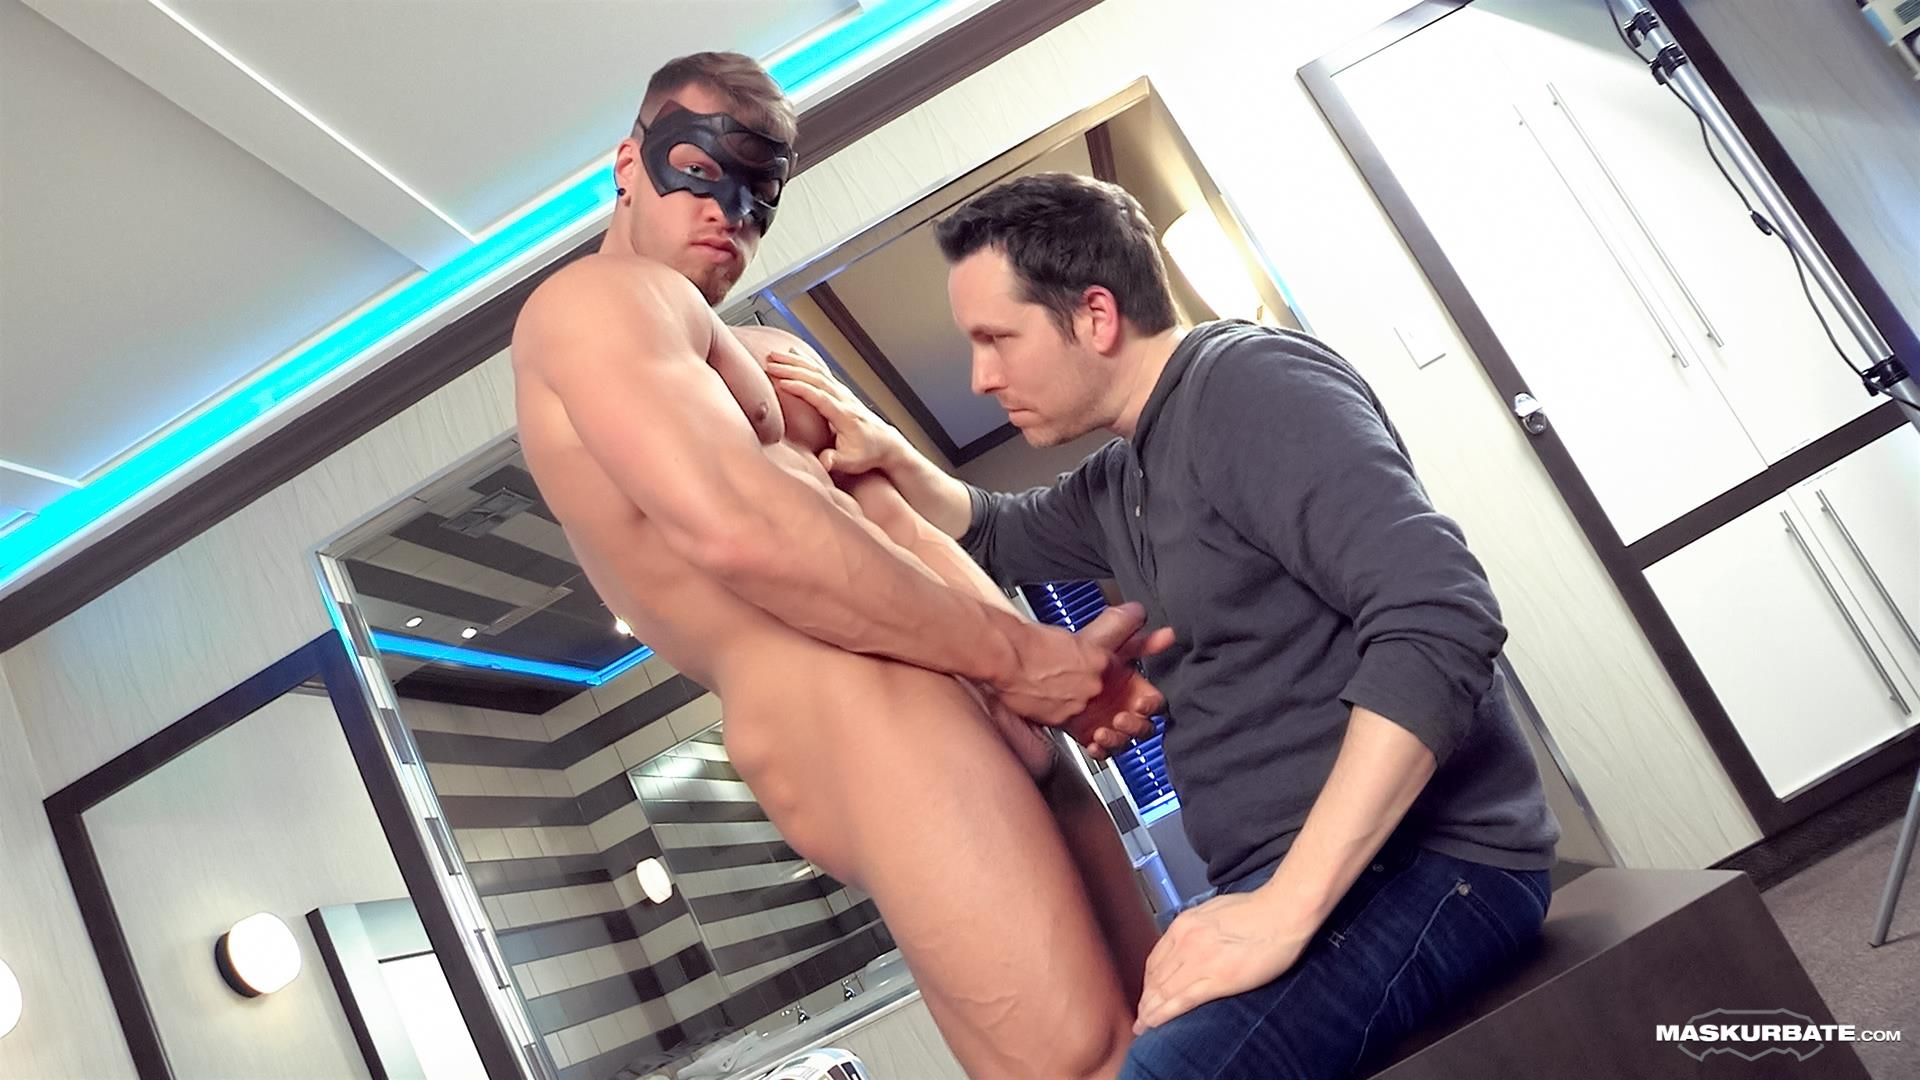 Maskurbate-Pascal-and-Brad-Straight-Muscle-Hunk-With-A-Big-Uncut-Cock-Jerking-His-Cock-Amateur-Gay-Porn-09 Worshipping A Straight Muscle Hunk With A Big Uncut Cock